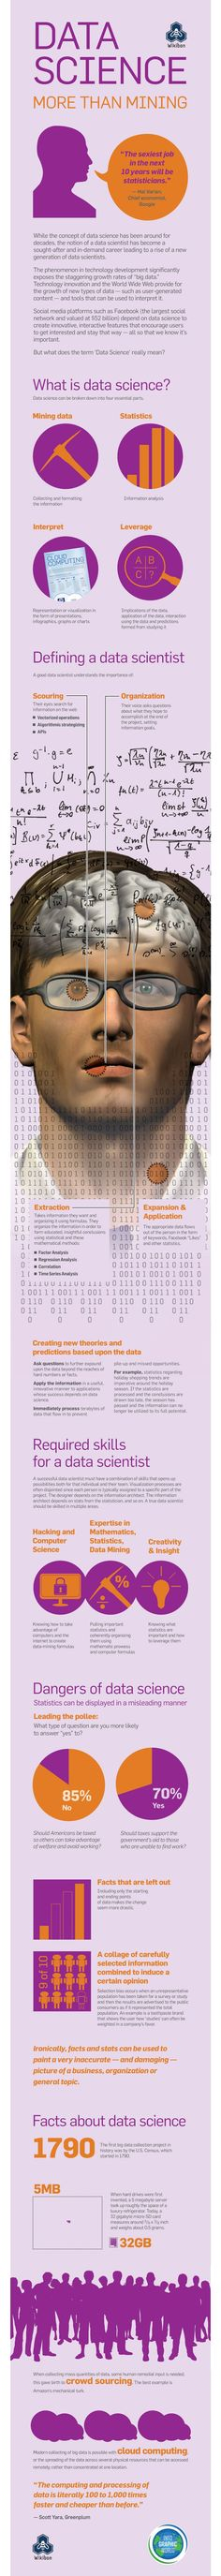 Defining a Data Scientist infographic.  I like this style of concentrated info in one neat poster.